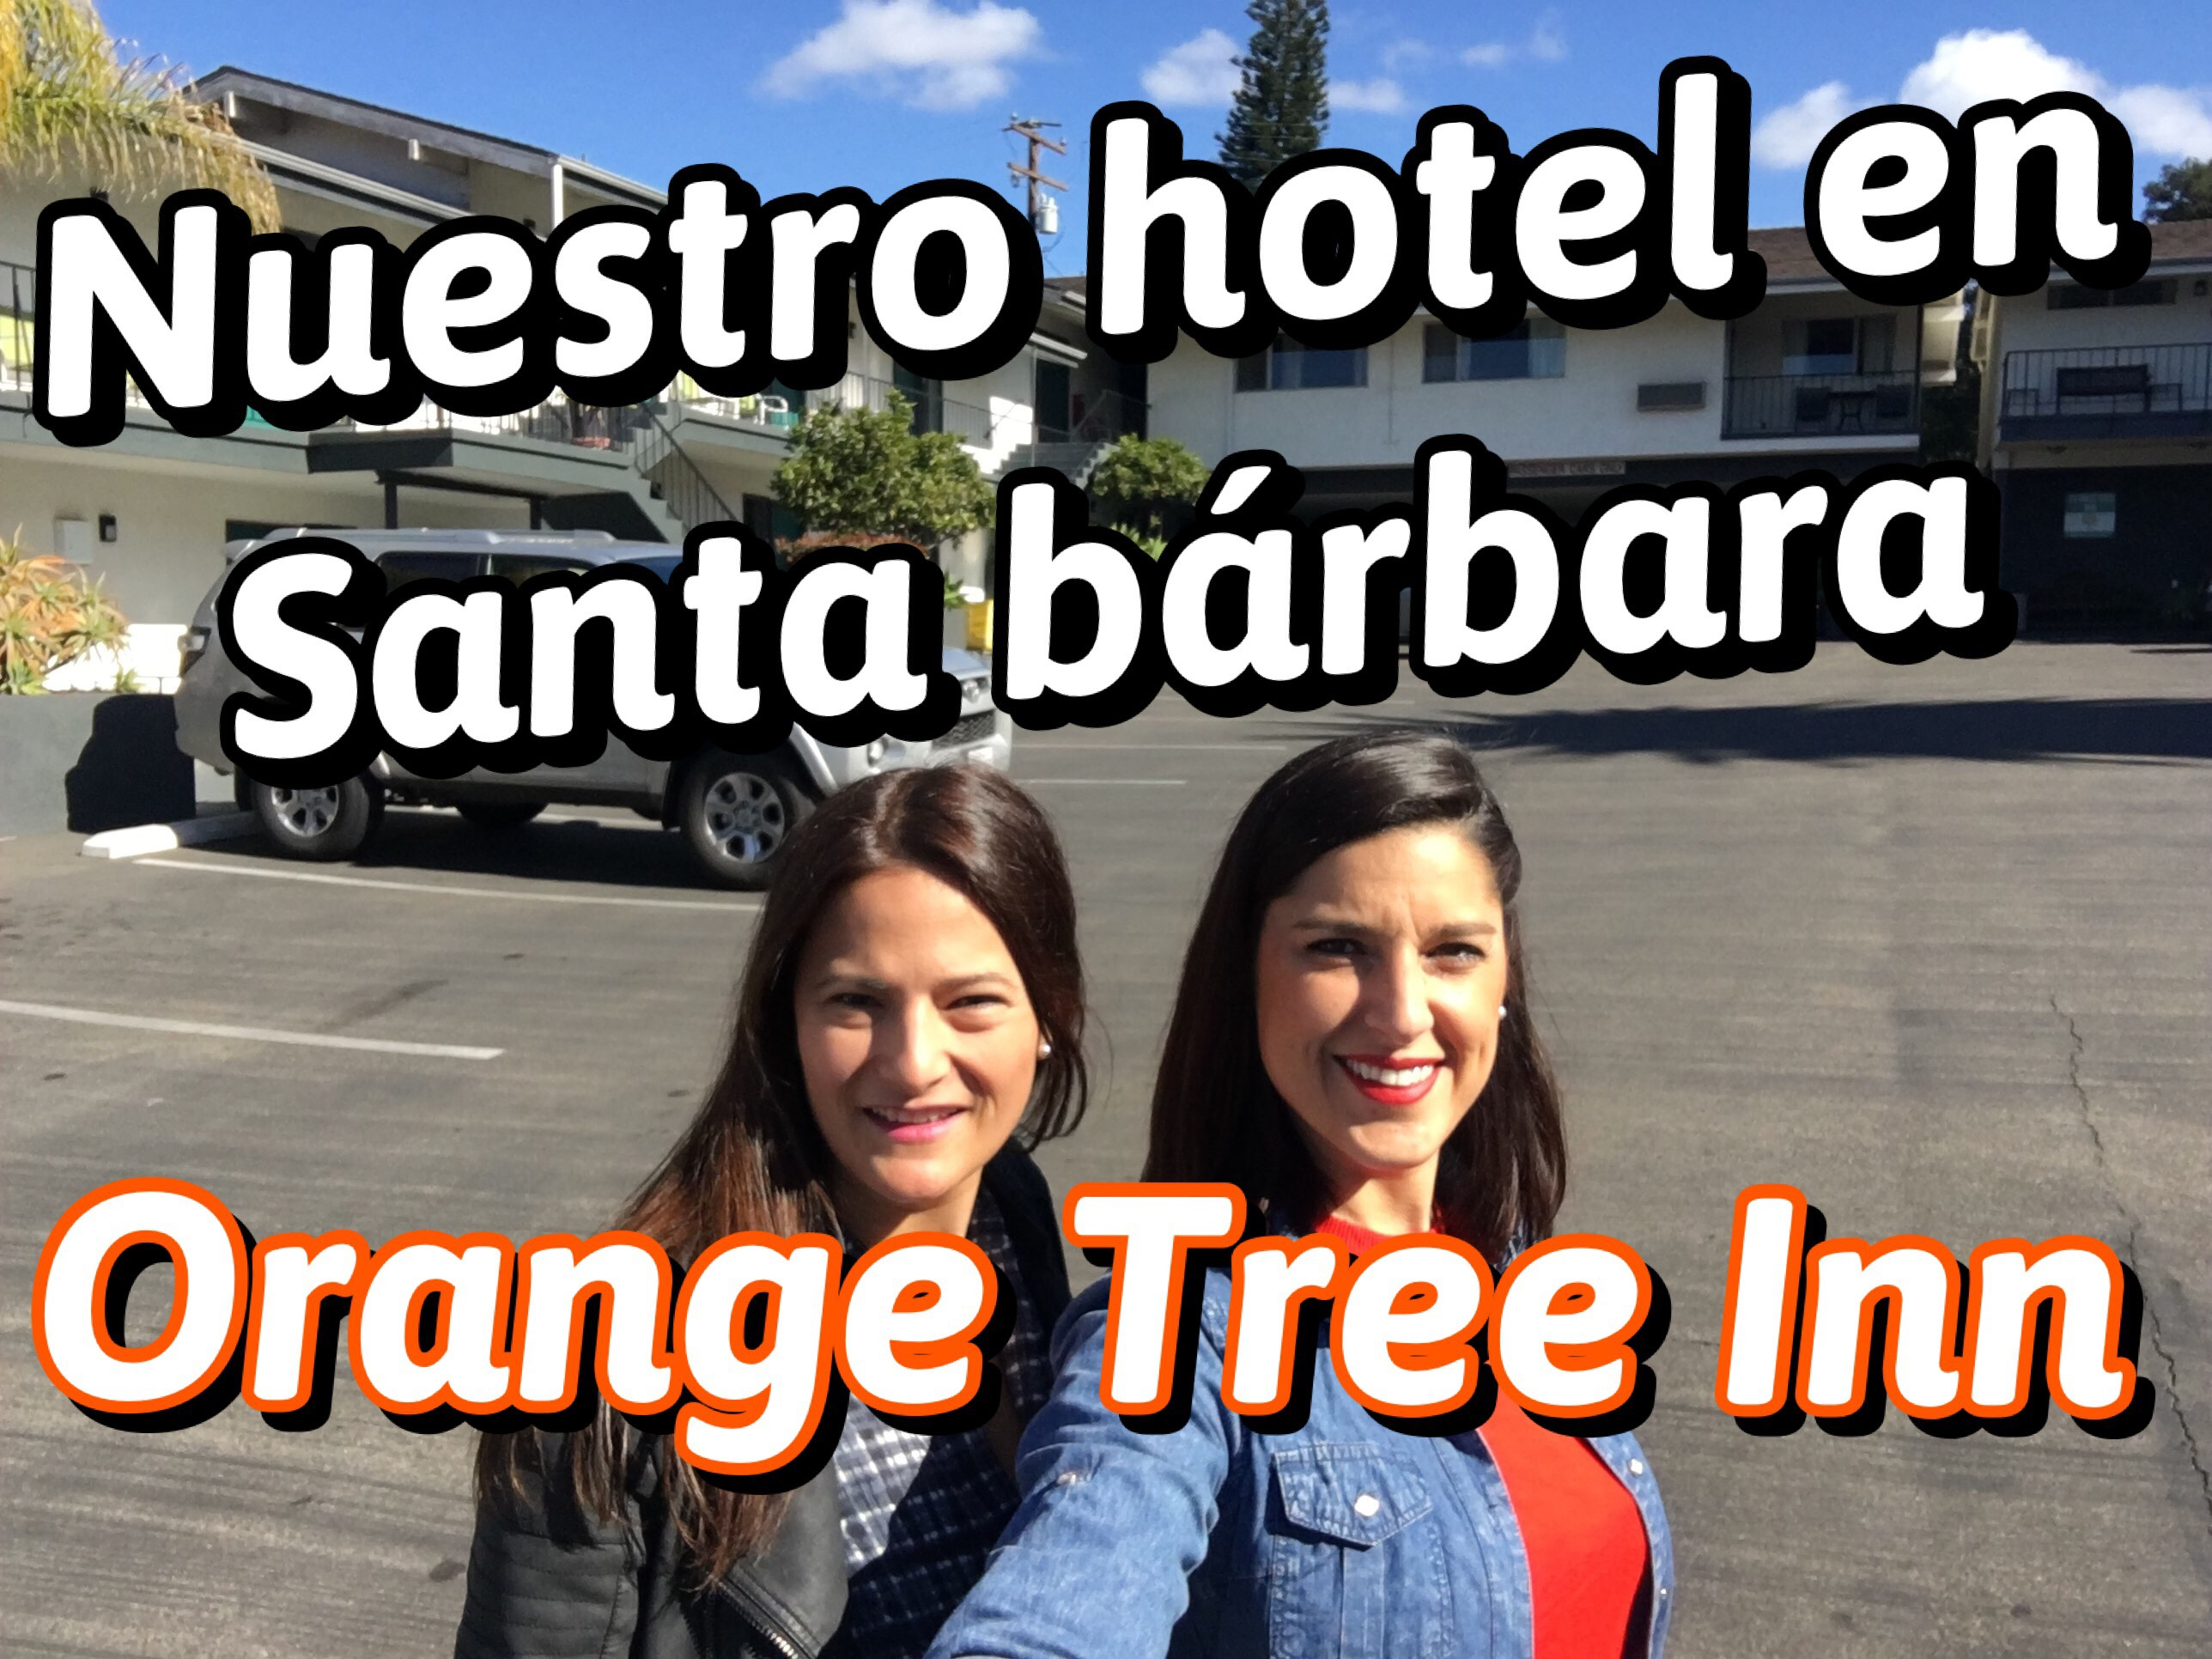 Orange Tree Inn – Nuestro hotel en Santa Bárbara